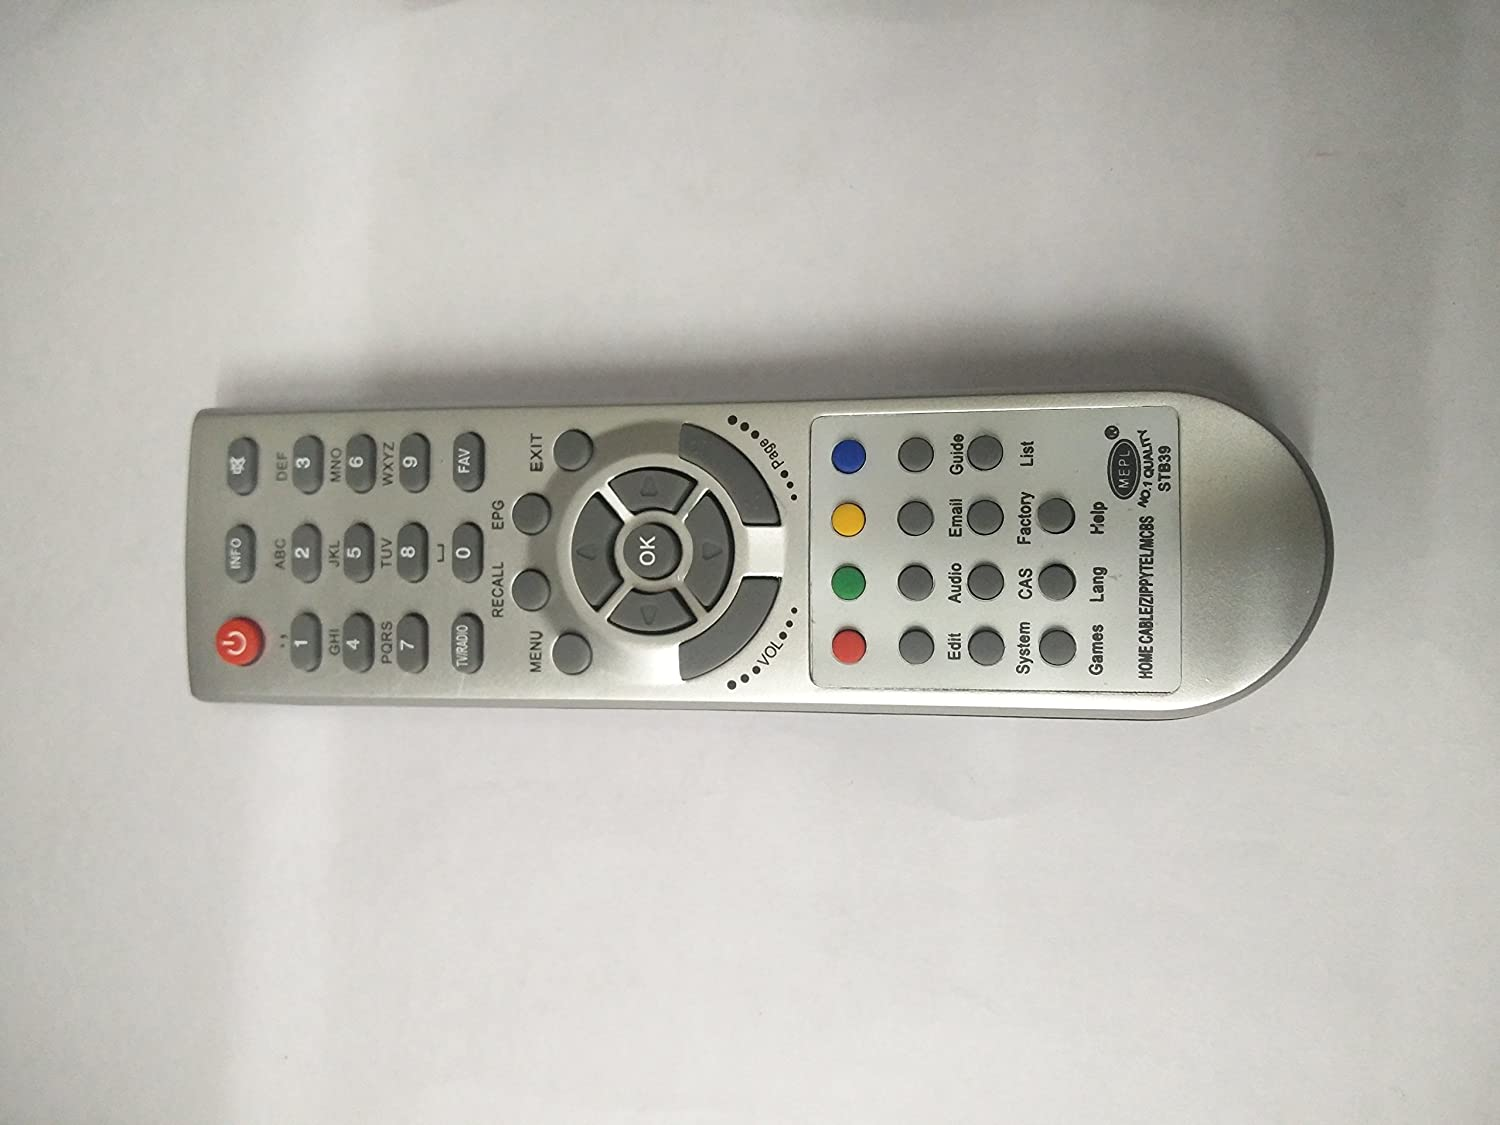 MEPL STB39 Zippytell Set Top Box Remote Contr..